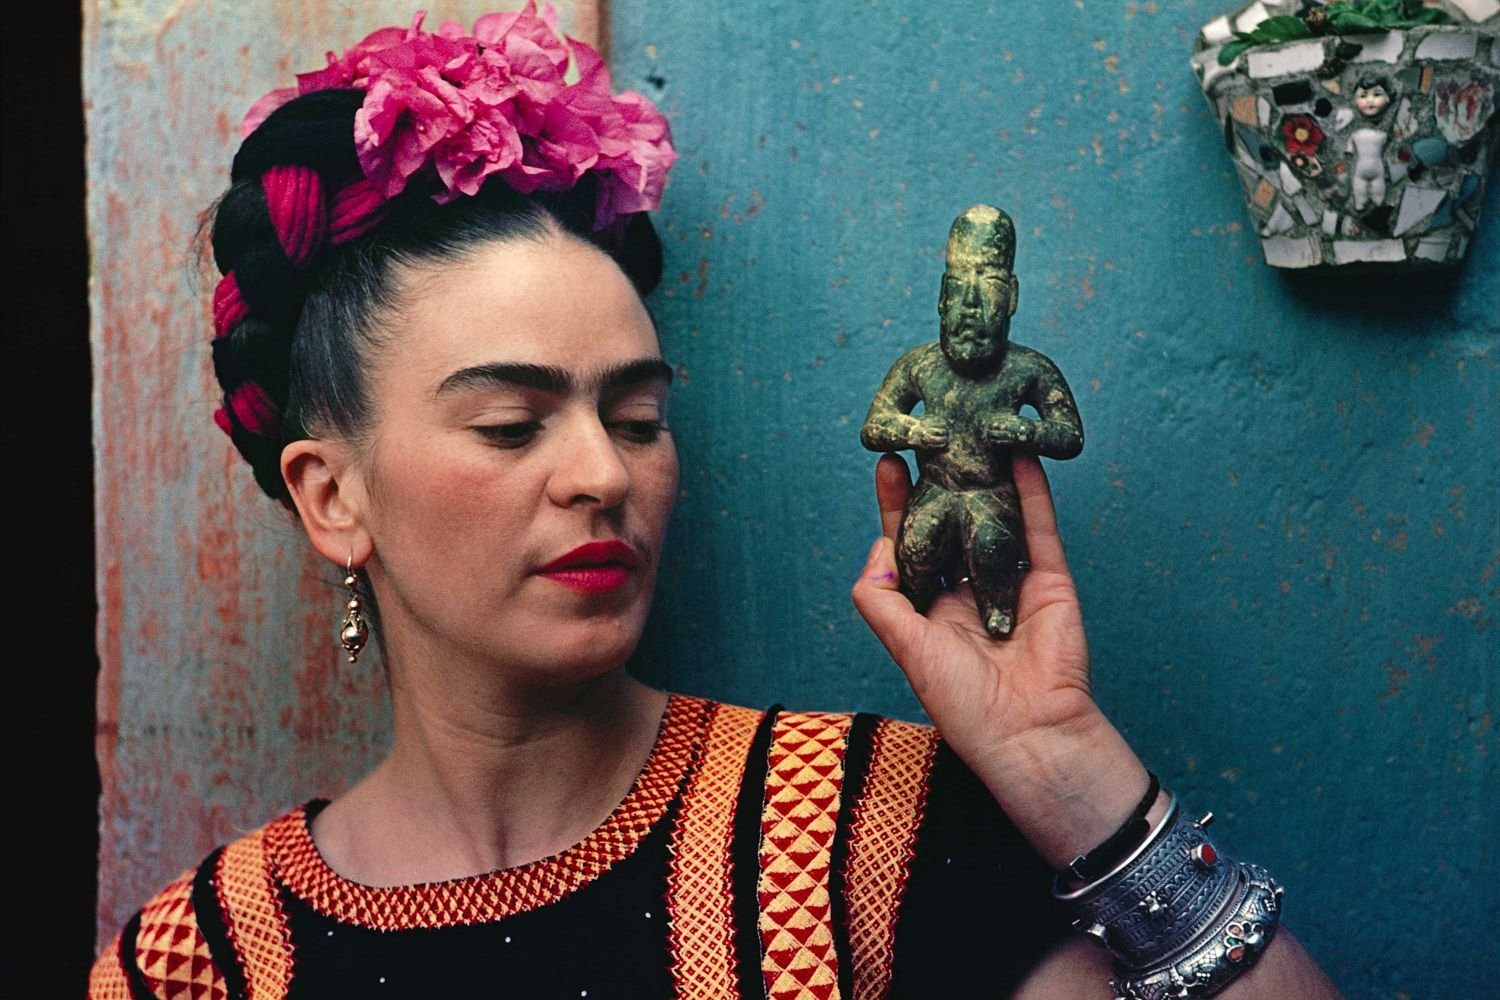 1500x1000 Milano celebrates Frida Kahlo's art